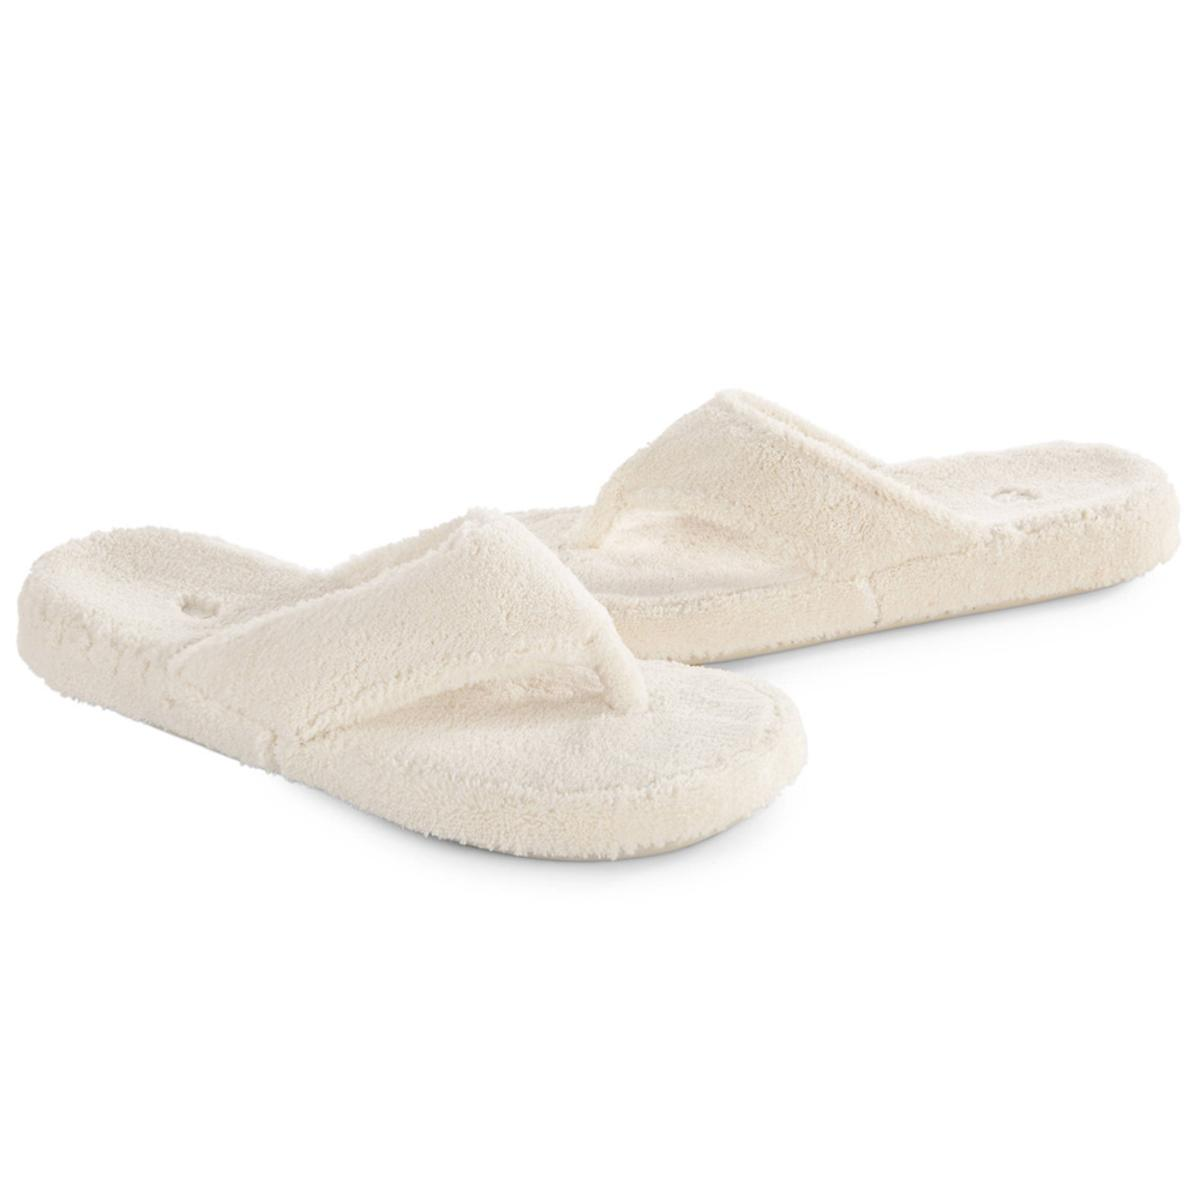 6e825d5319d1 ACORN Women s Spa Thong Slippers - Natural - The Warming Store